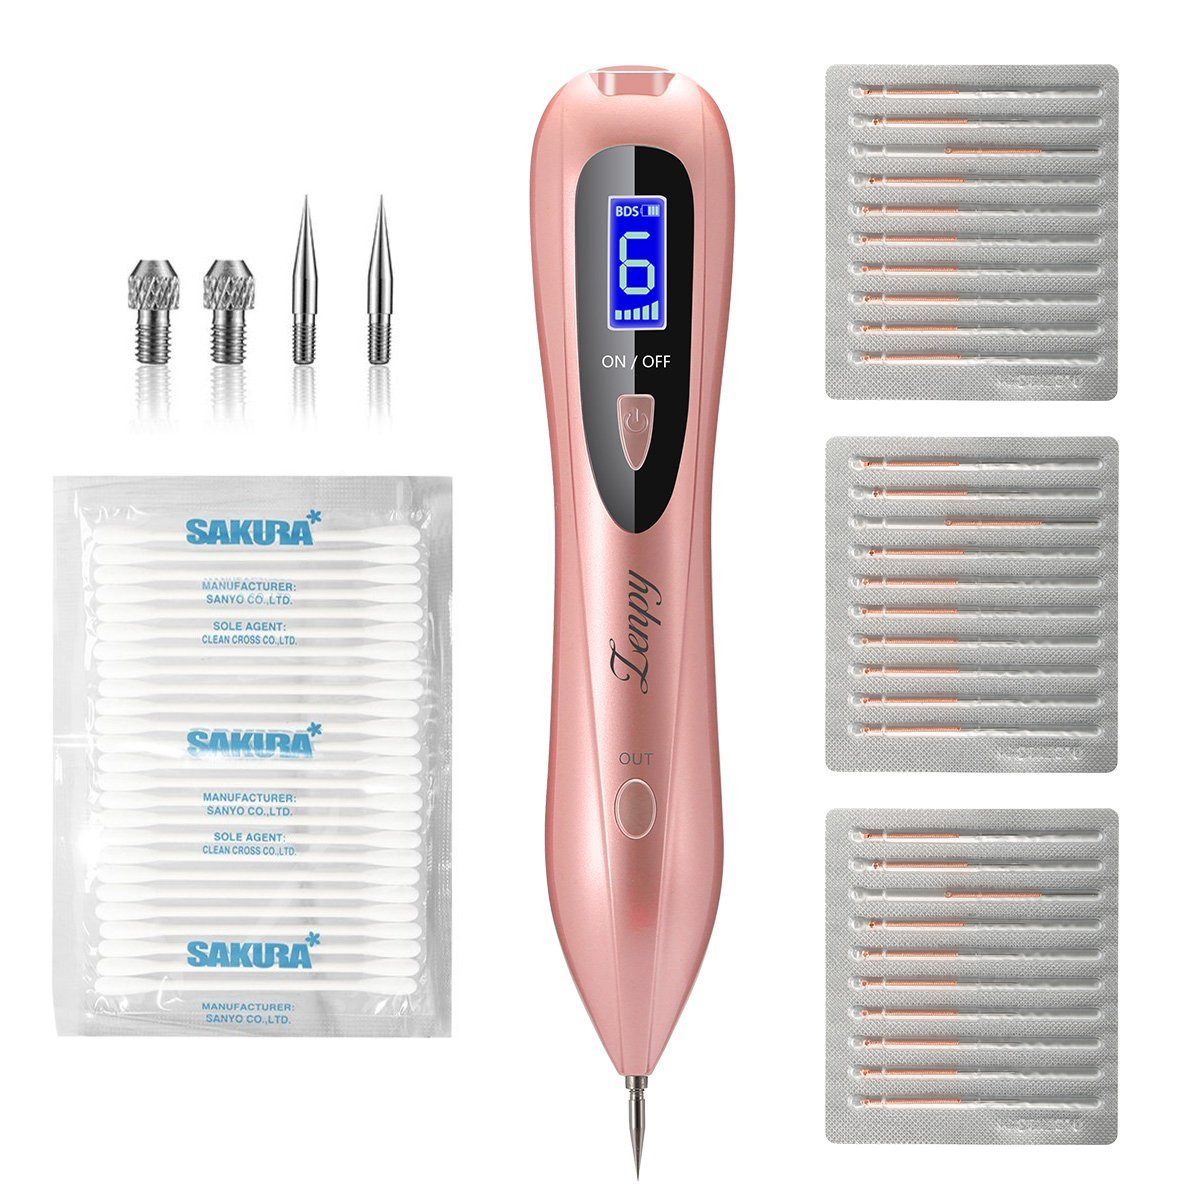 Portable Dark Spot Removal, Professional Tattoo Removel Tool for Skin Tag Freckles Dark Spot Skin Pigmentation with Replaceable Needles SanShi